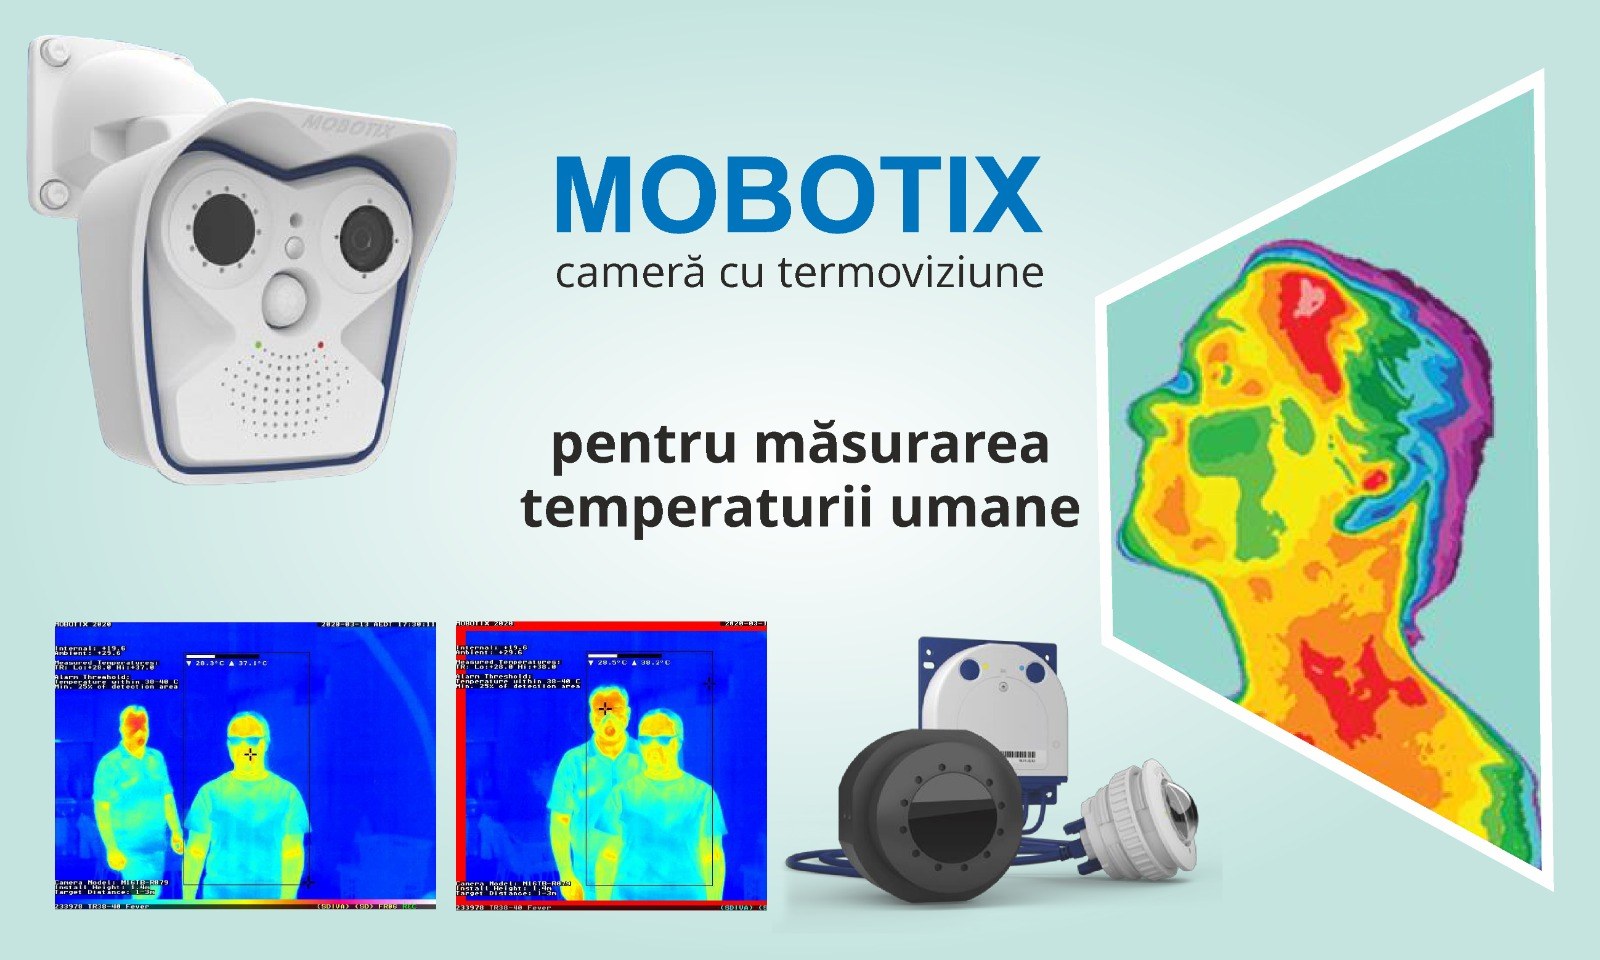 camera mobotix citire temperatura